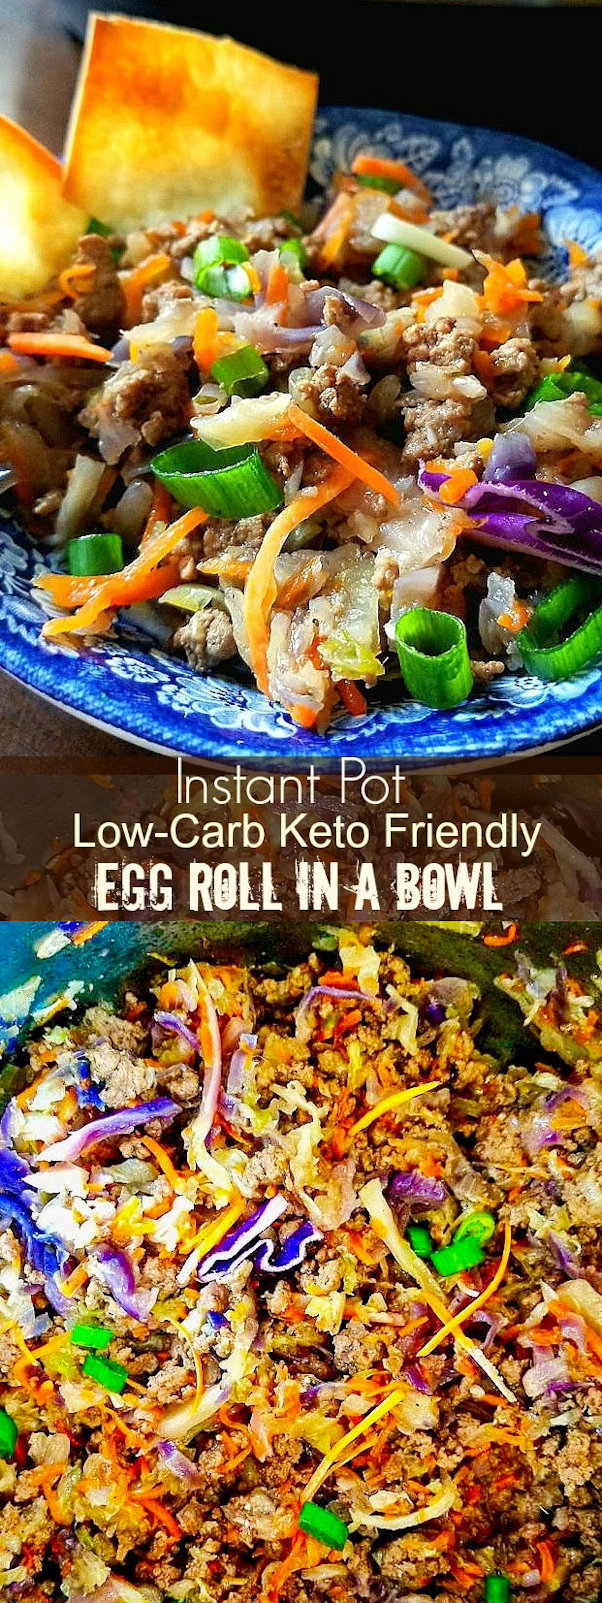 Instant Pot Low Carb Keto Friendly Egg Roll in a Bowl